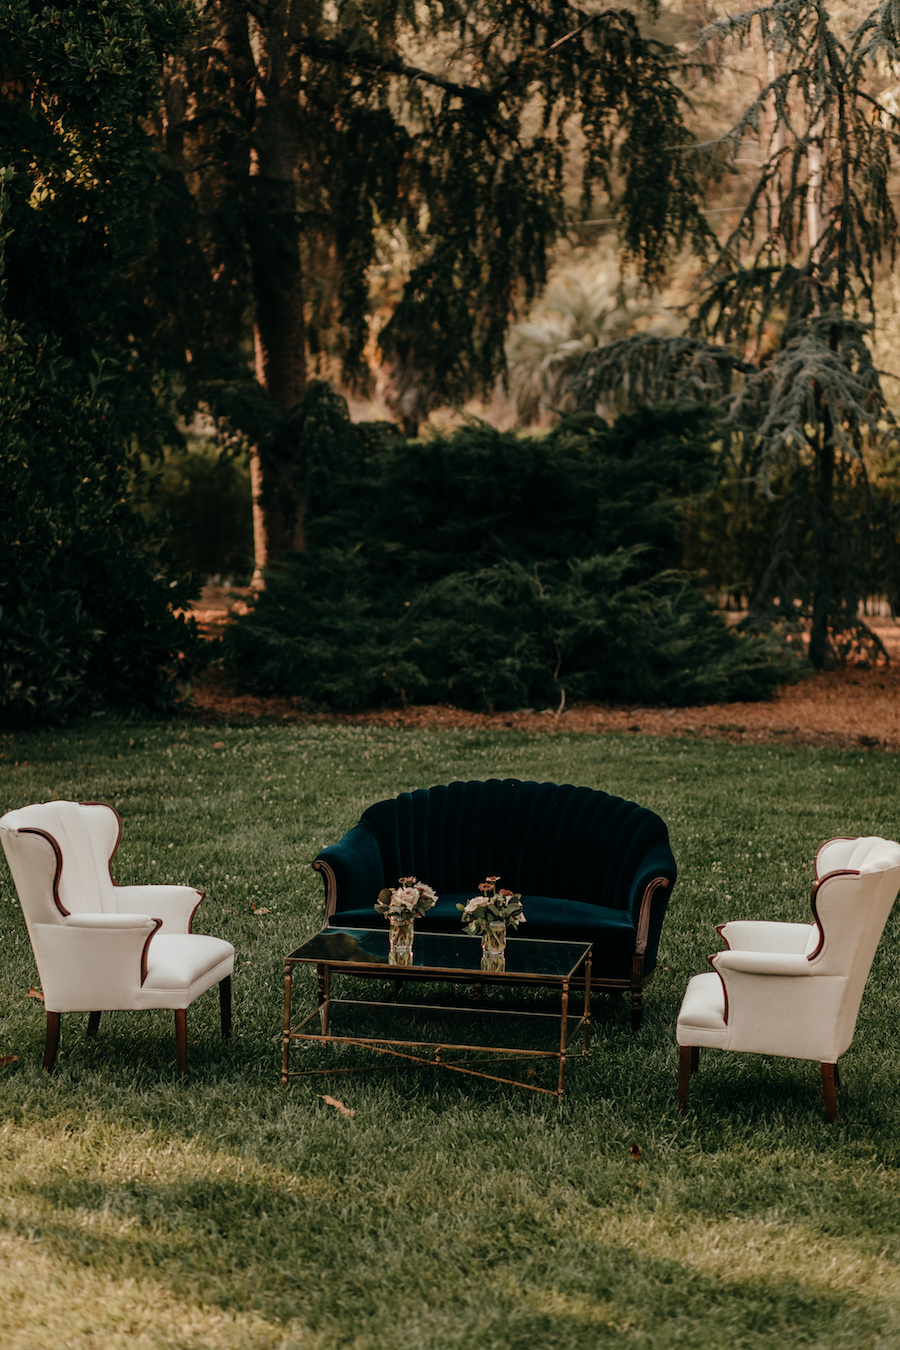 Jennifer and Jared's Chic Copper-Toned Wedding at Chateau St. Jean12.jpg